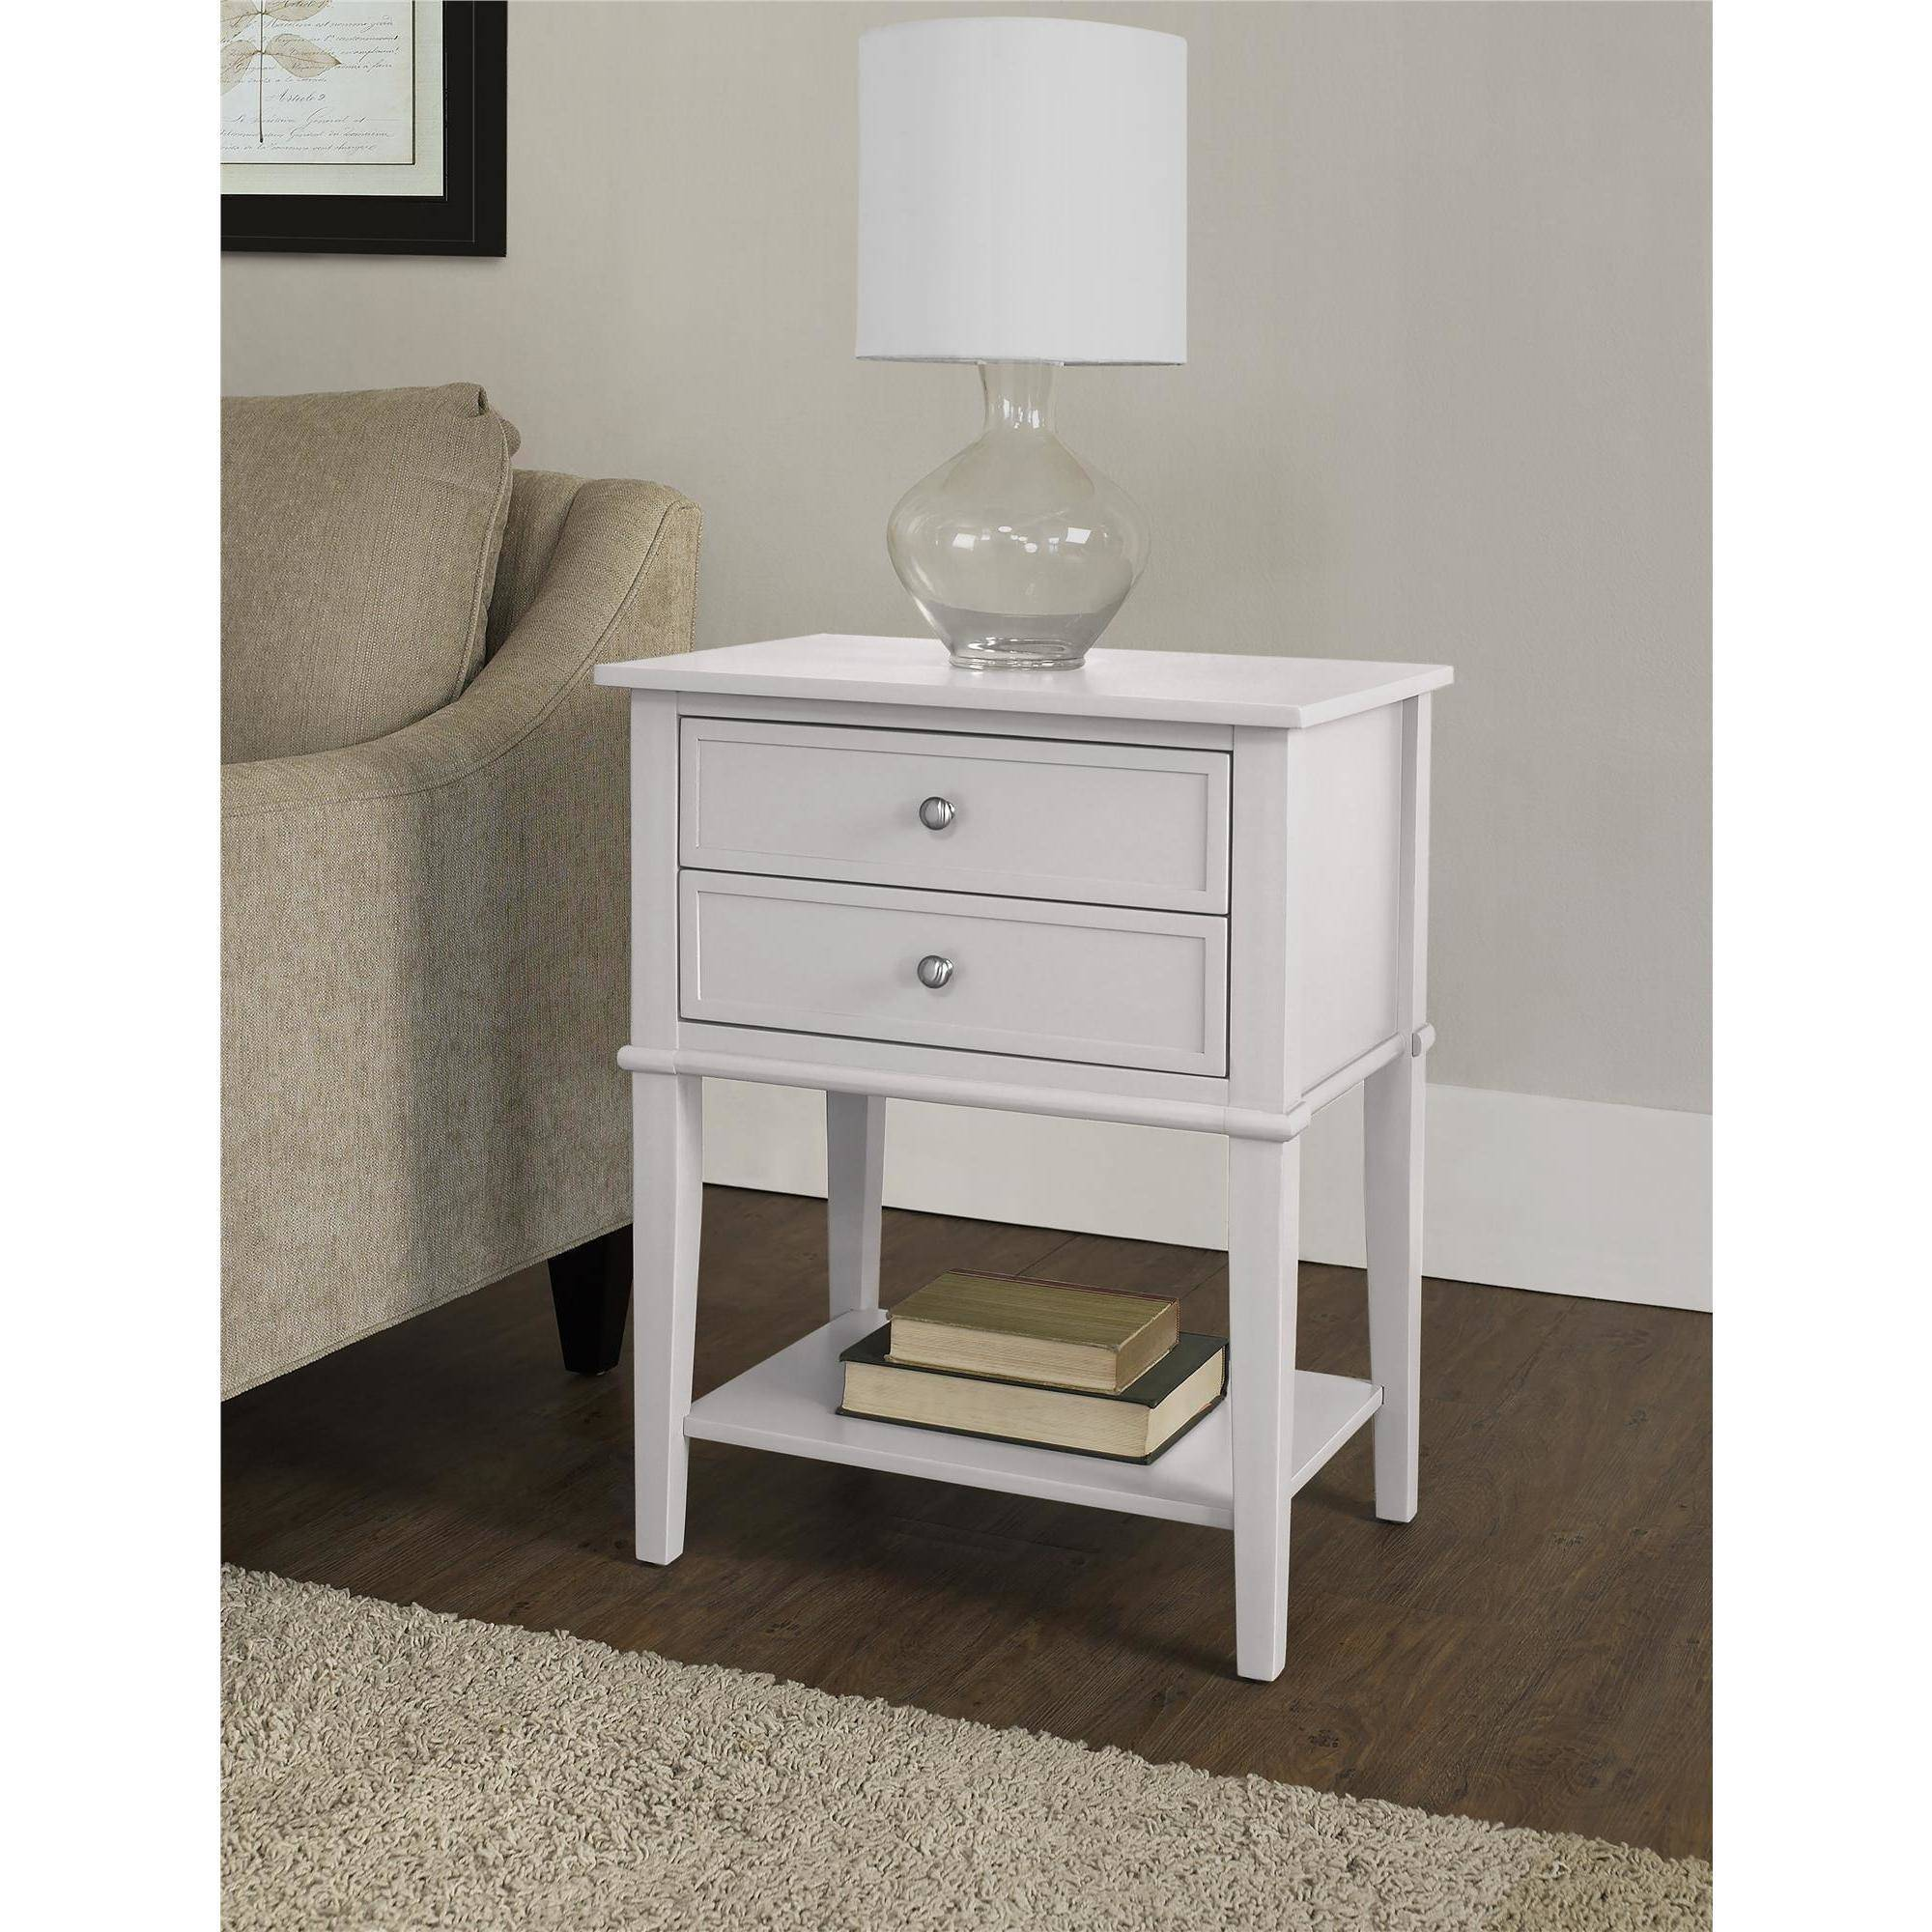 altra franklin accent table with drawers white end tables ture most popular coffee countertop and chairs art desk hobby lobby round metal side vintage retro furniture ikea nest